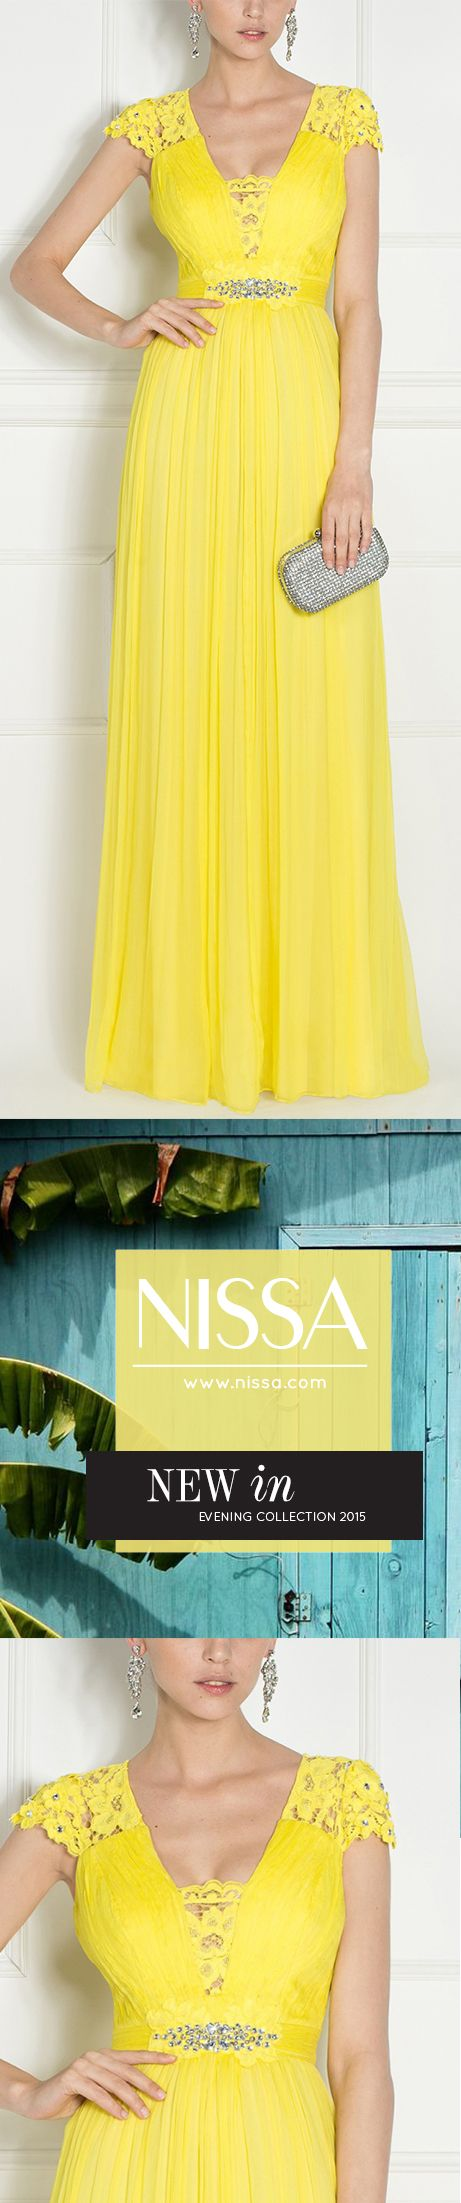 NISSA Evening 2015  ‪#‎nissa‬ ‪#‎evening‬ ‪#‎dress‬ ‪#‎silk‬ ‪#‎embroidery‬ ‪#‎crystals‬ ‪#‎fashion‬ ‪#‎look‬ ‪#‎style‬ ‪#‎glamorous‬ ‪#‎yellow‬